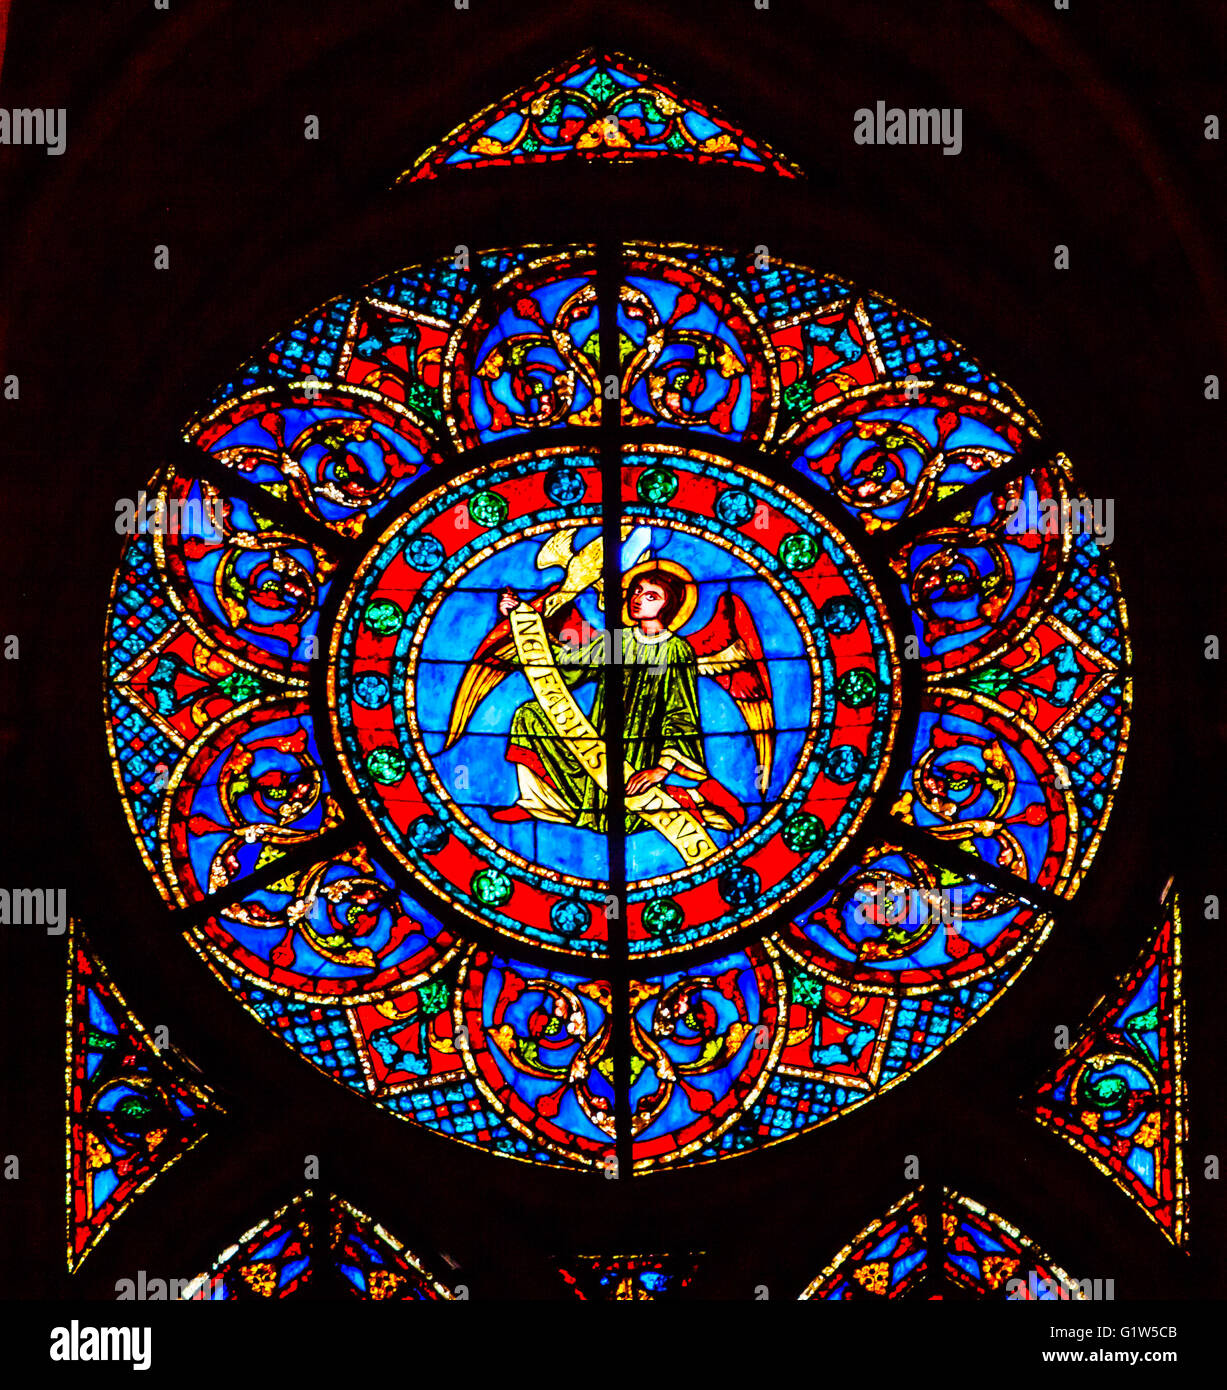 Angel Stained Glass Notre Dame Cathedral Paris France.  Notre Dame was built between 1163 and 1250 AD. - Stock Image